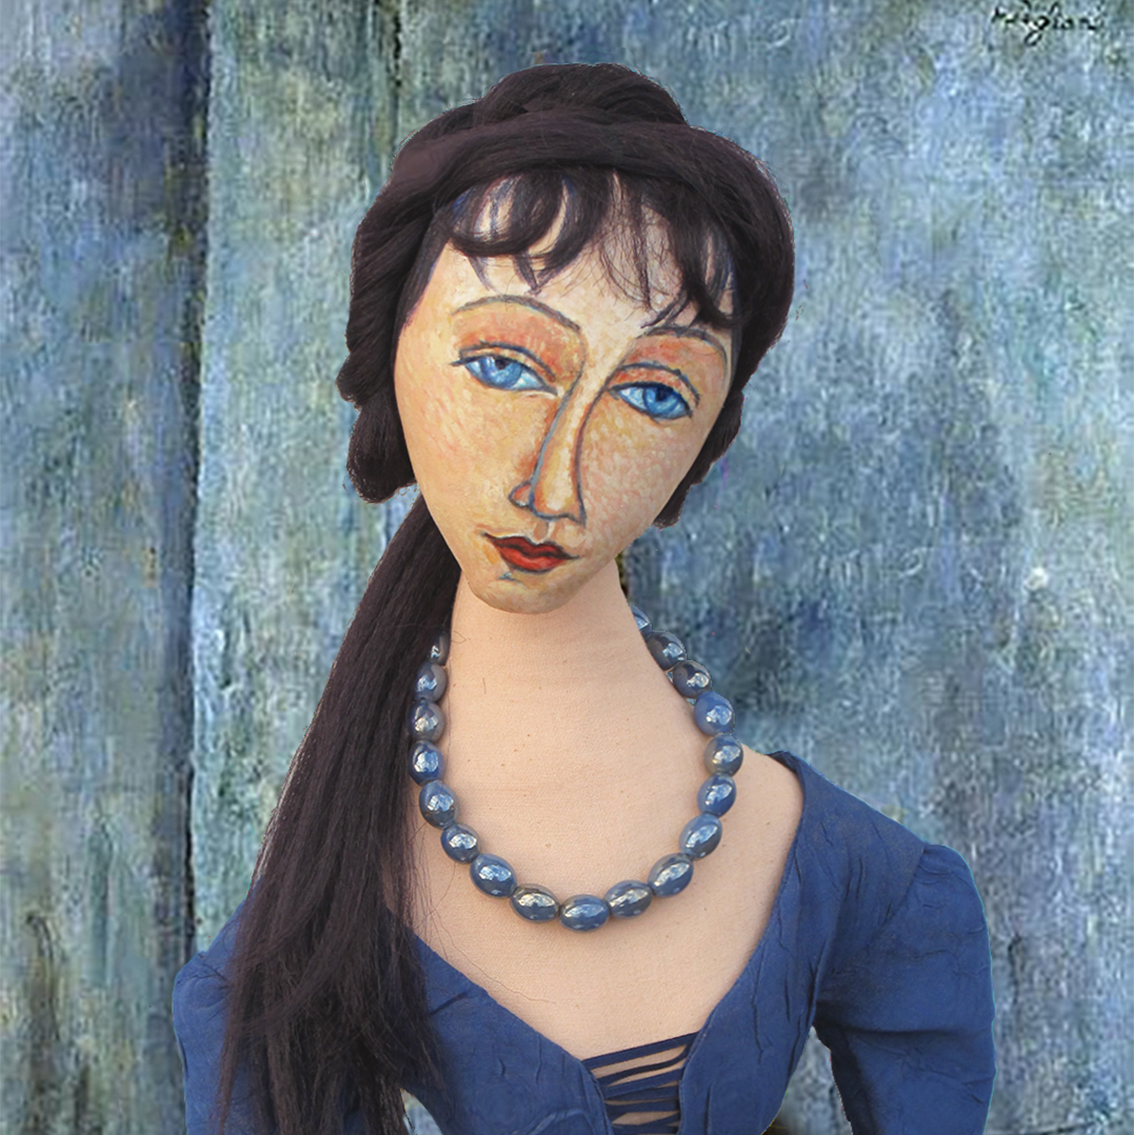 Jeanne muse as 'Woman with Blue Eyes' by Amedeo Modigliani. Muse made by Marina Elphick. Jeanne Hébuterne was Modigliani's muse and lover, dying tragically young at 21.